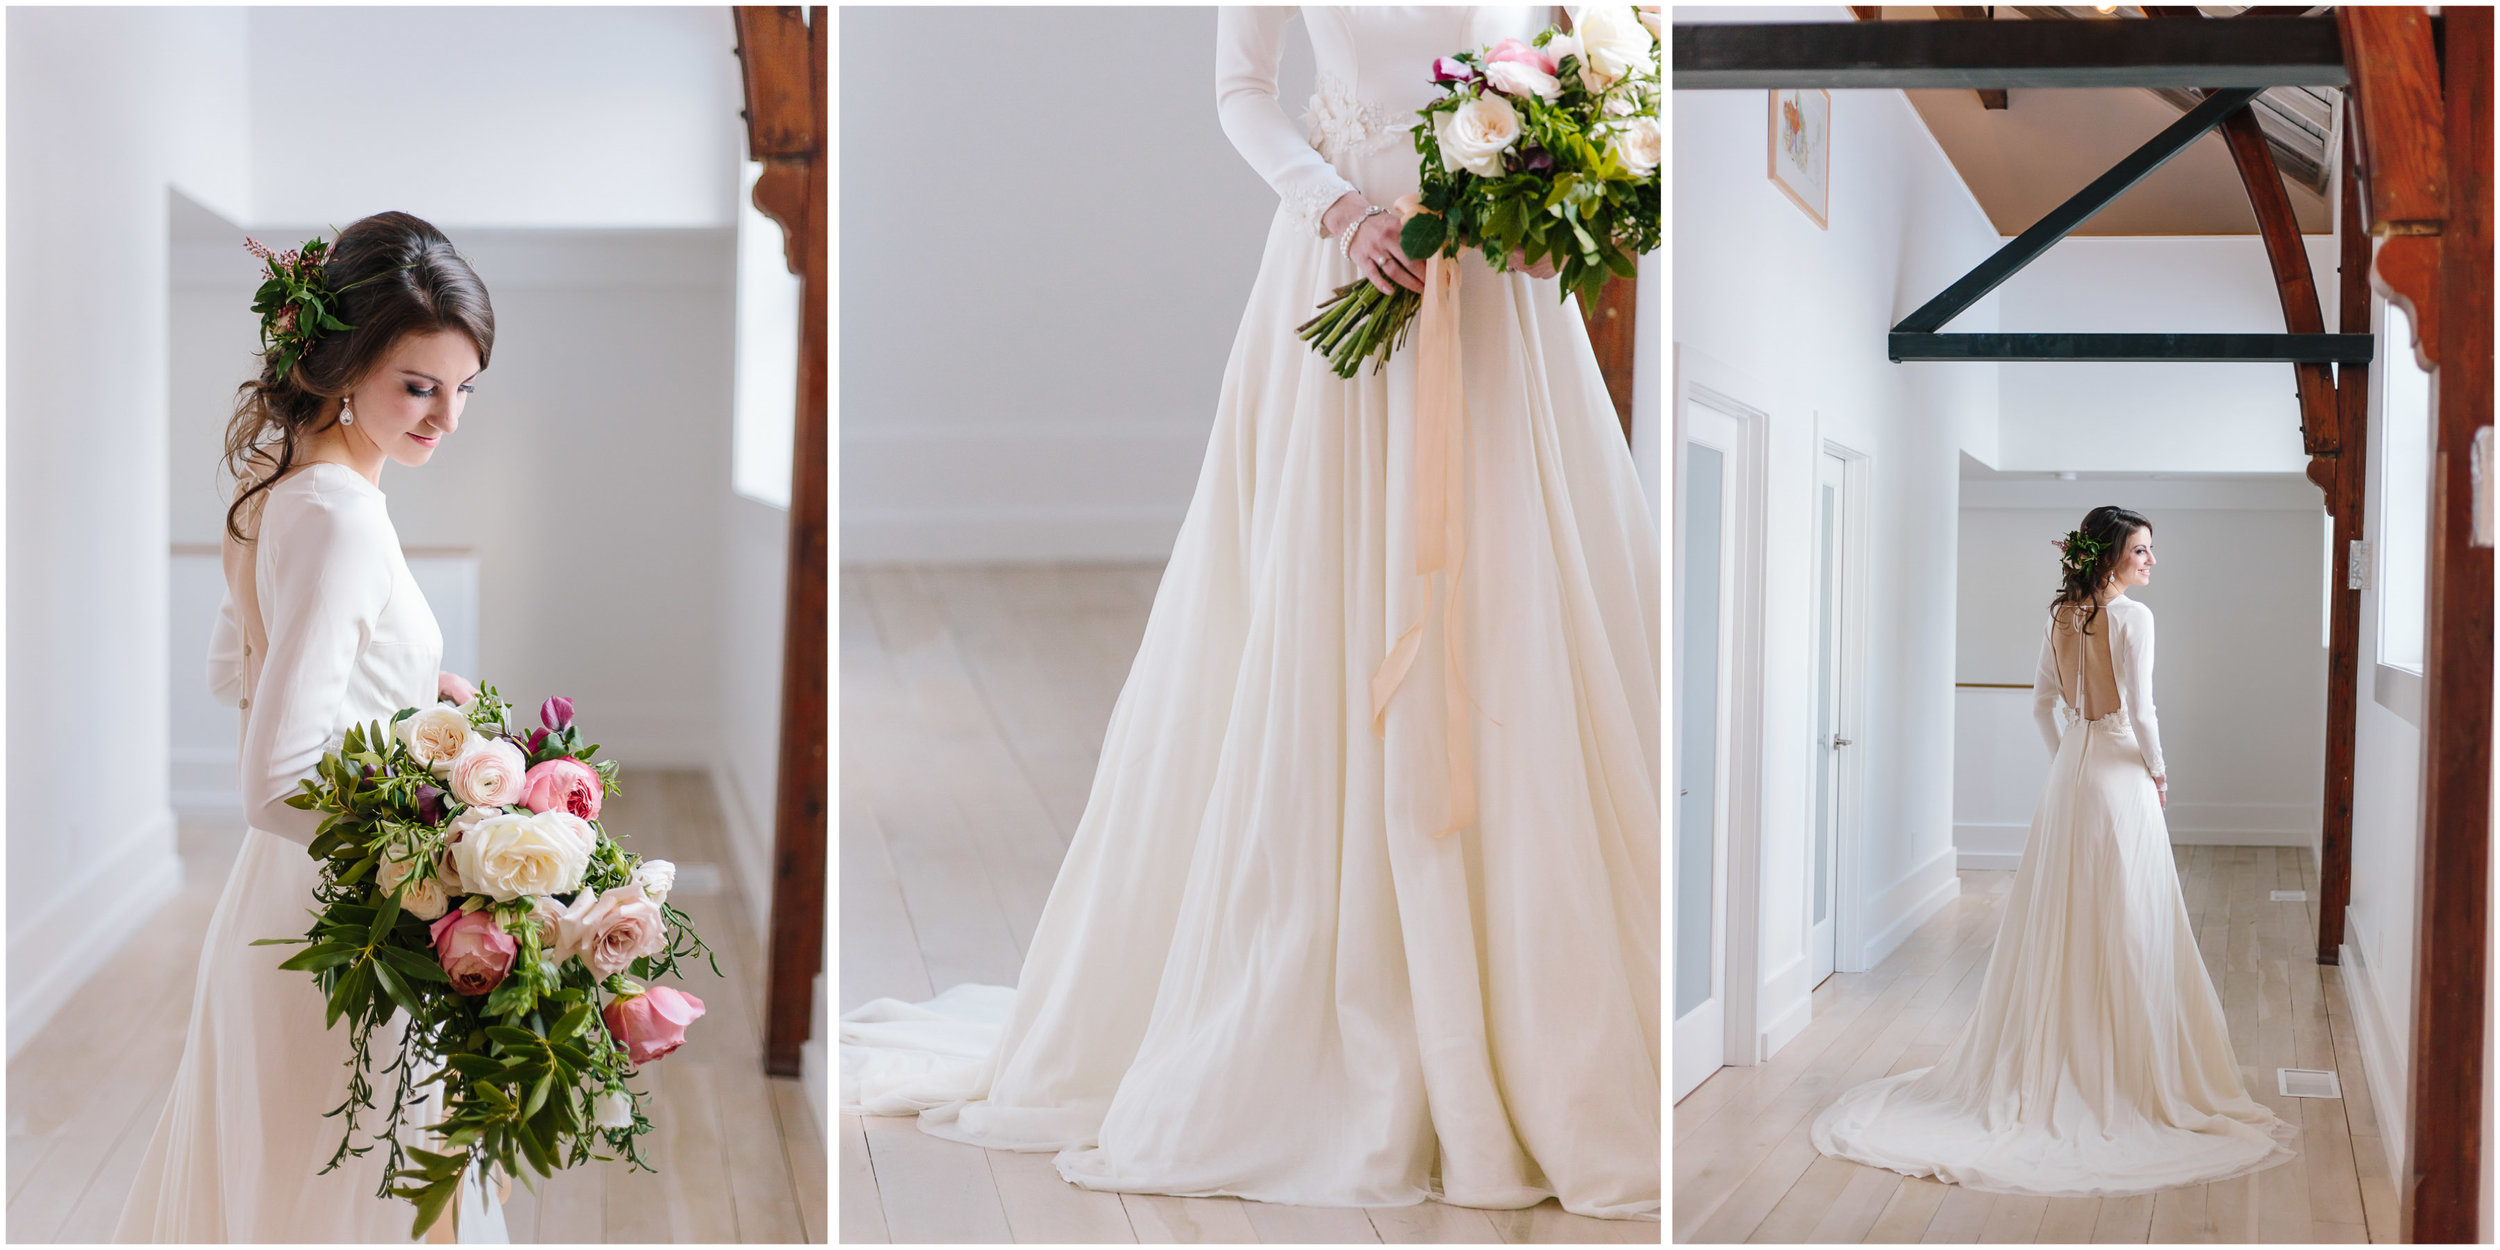 Intimate and romantic styled wedding photography in Lee, Massachusetts in the Berkshires - bride